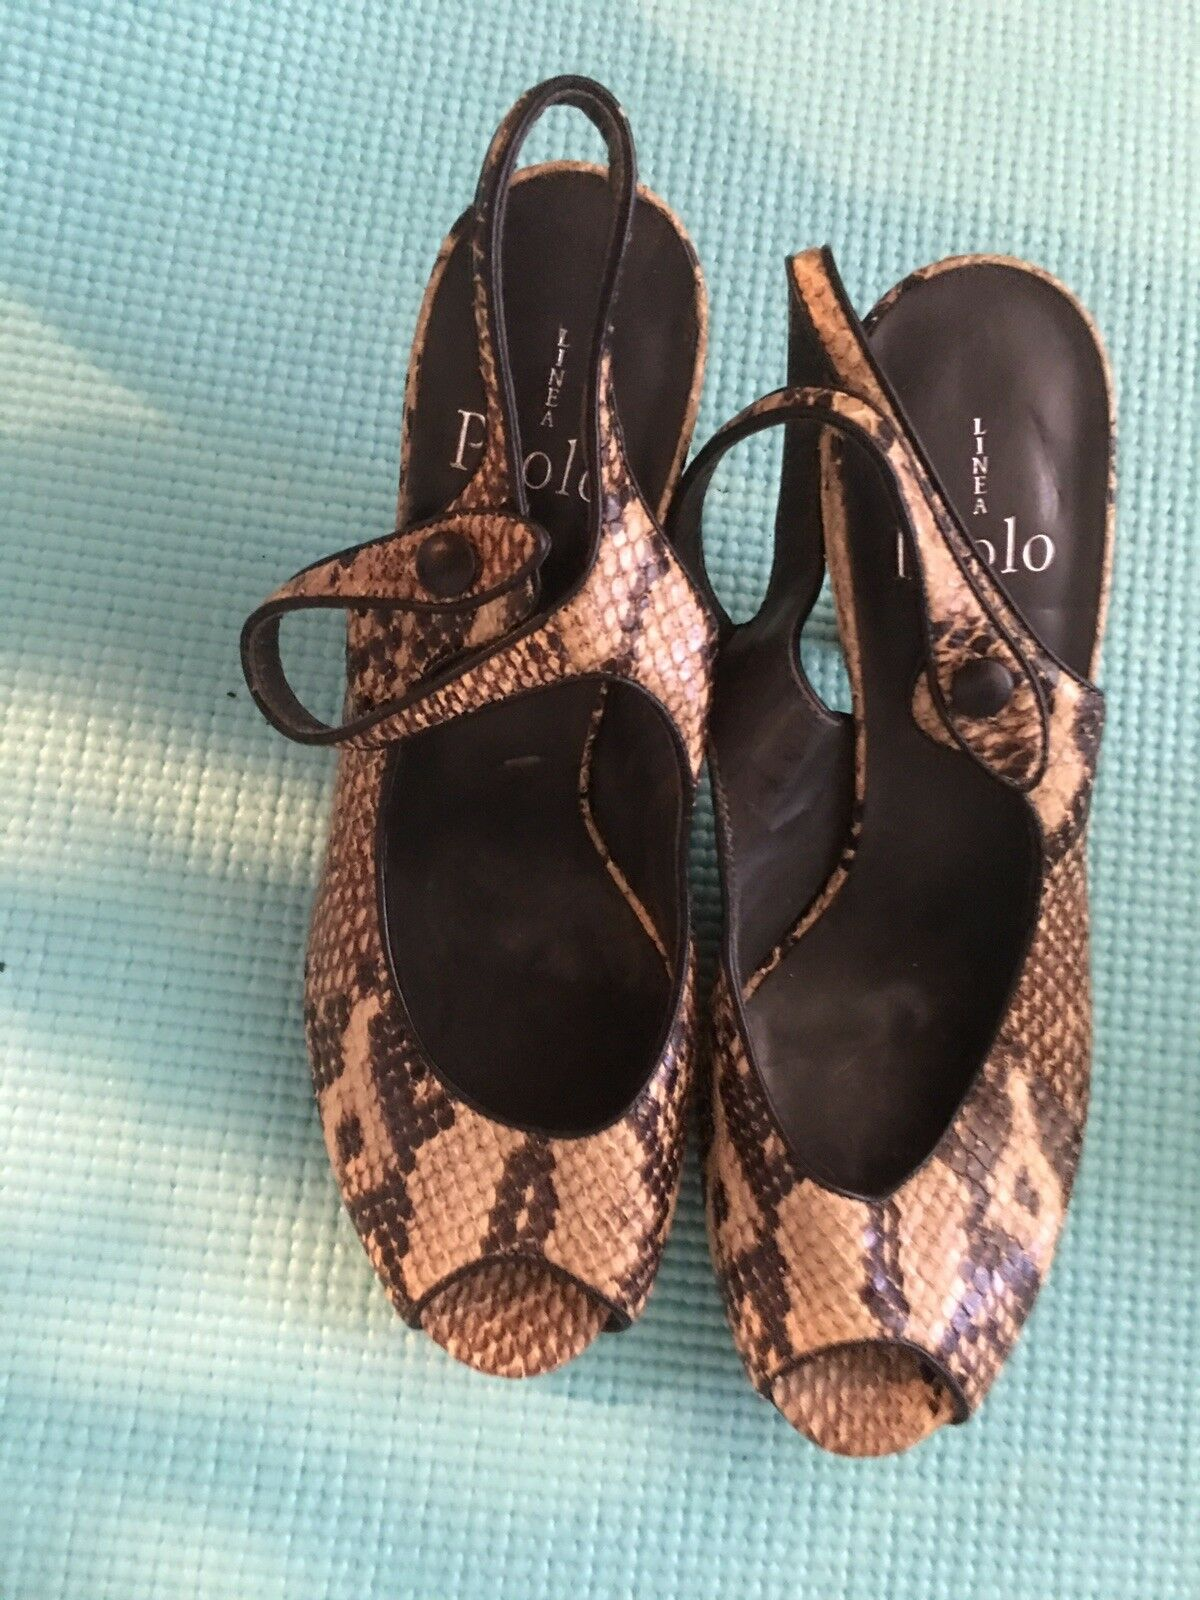 Pre owned Animal print leather sling back Paolo Women Sandals size 7.5 Medium